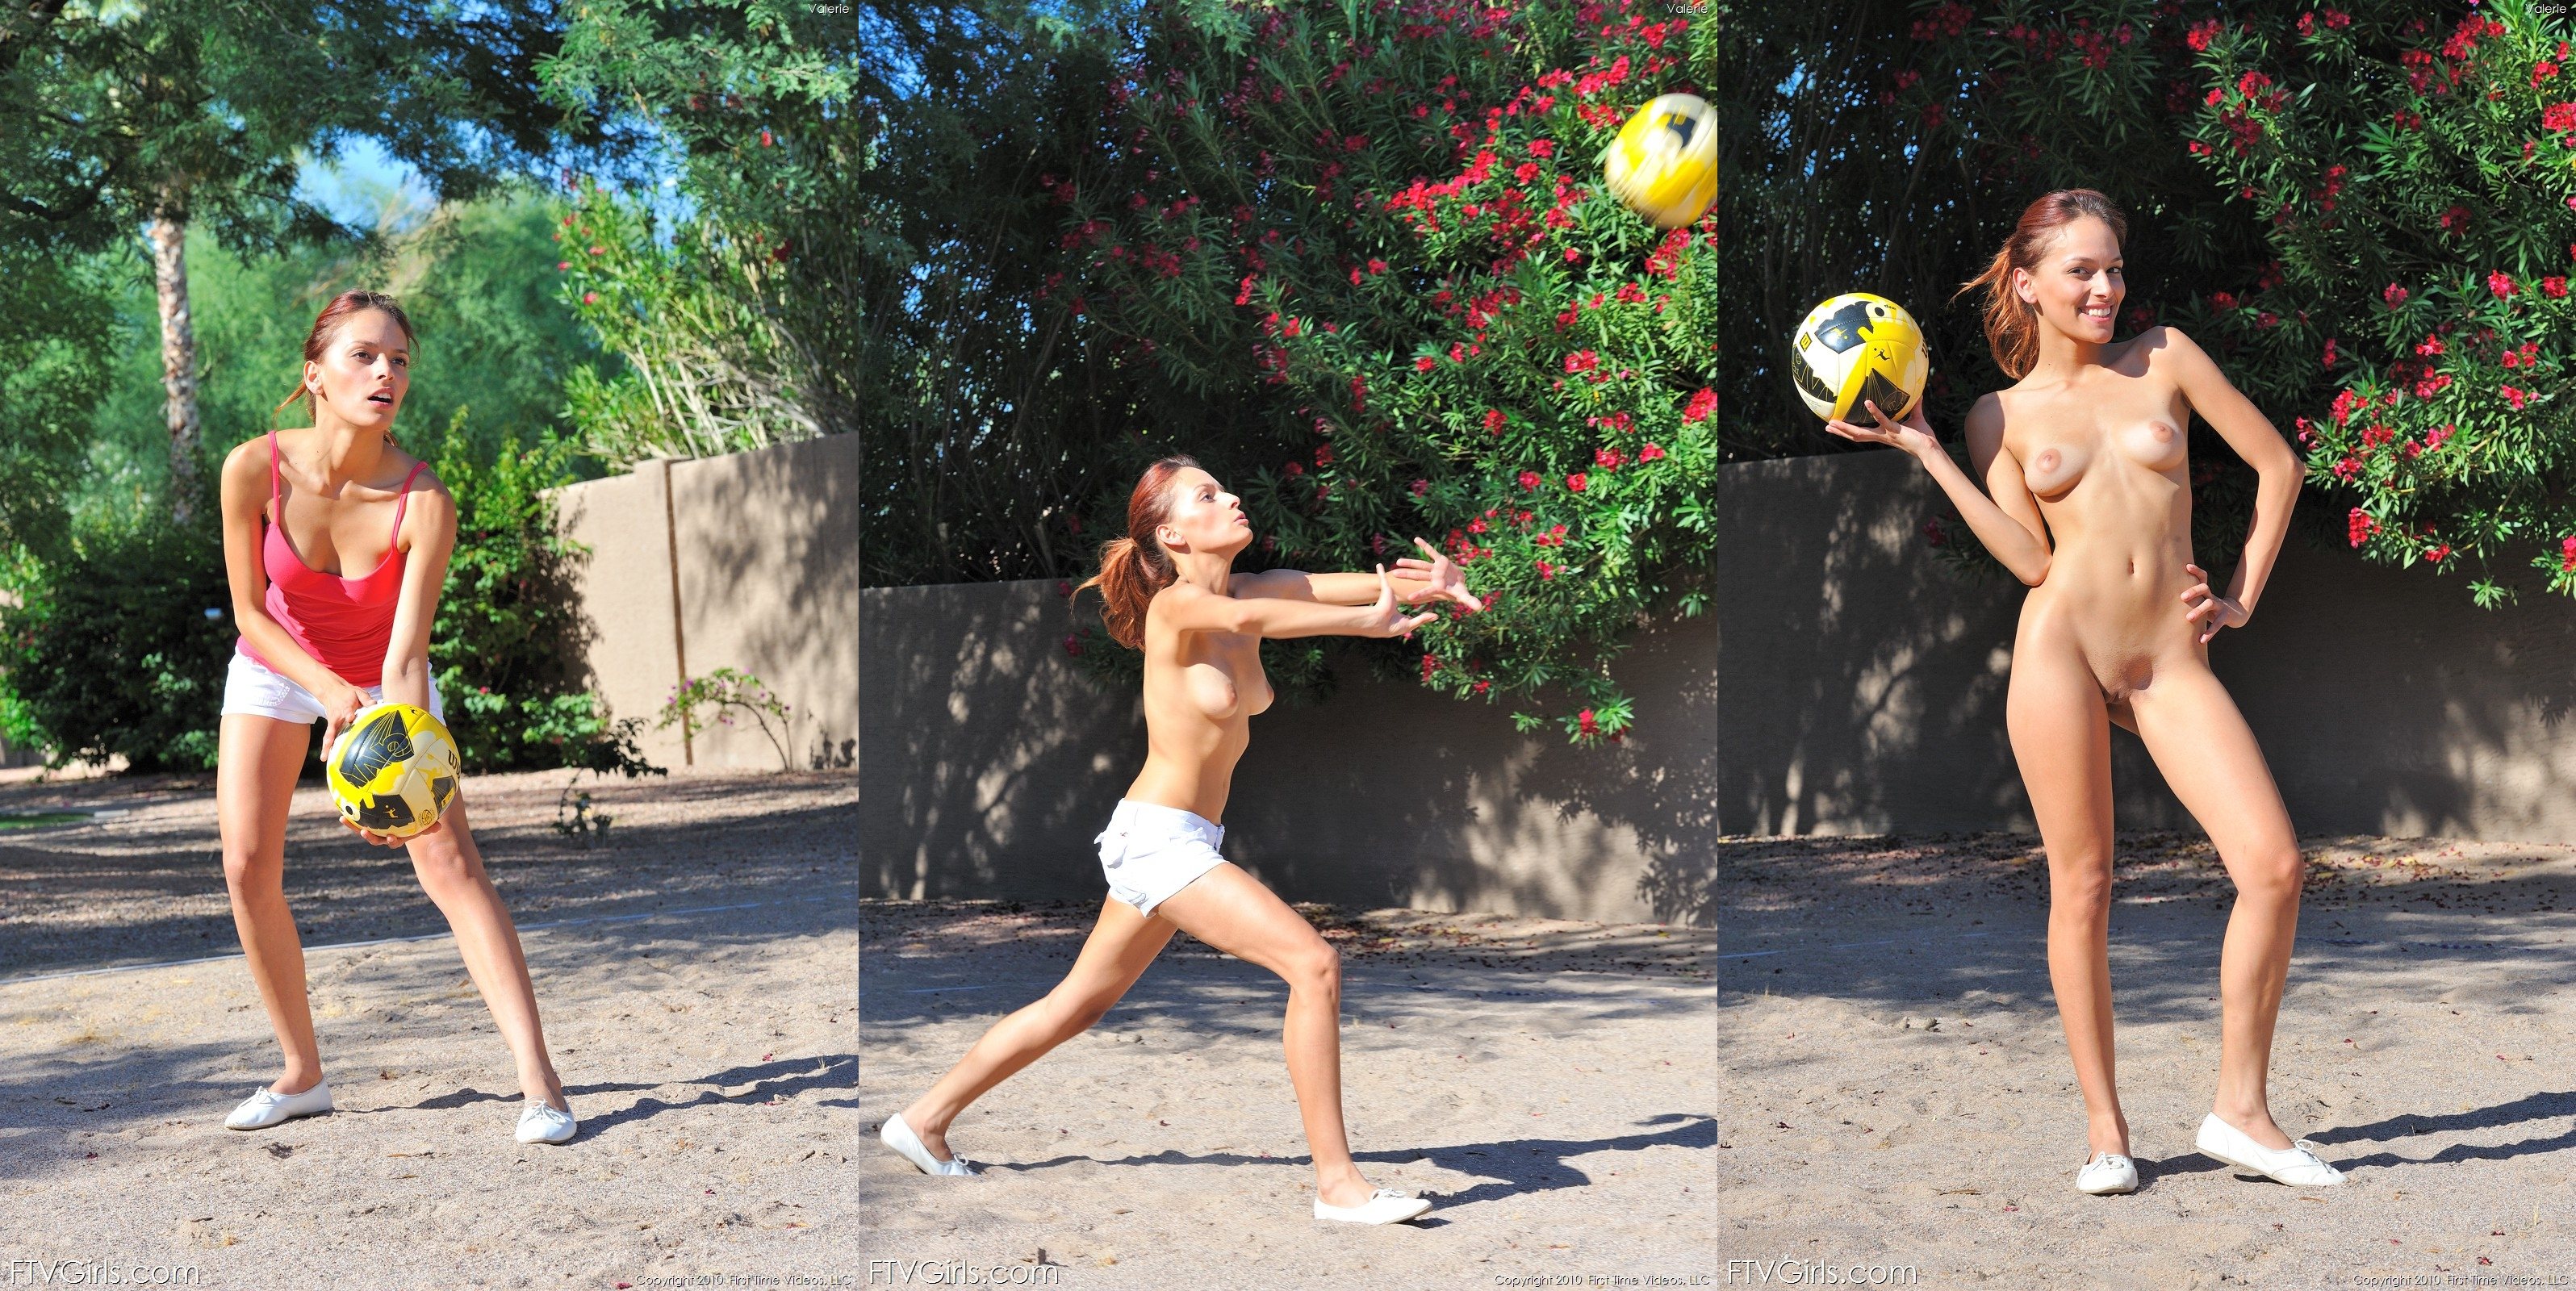 Strip volleyball video pic